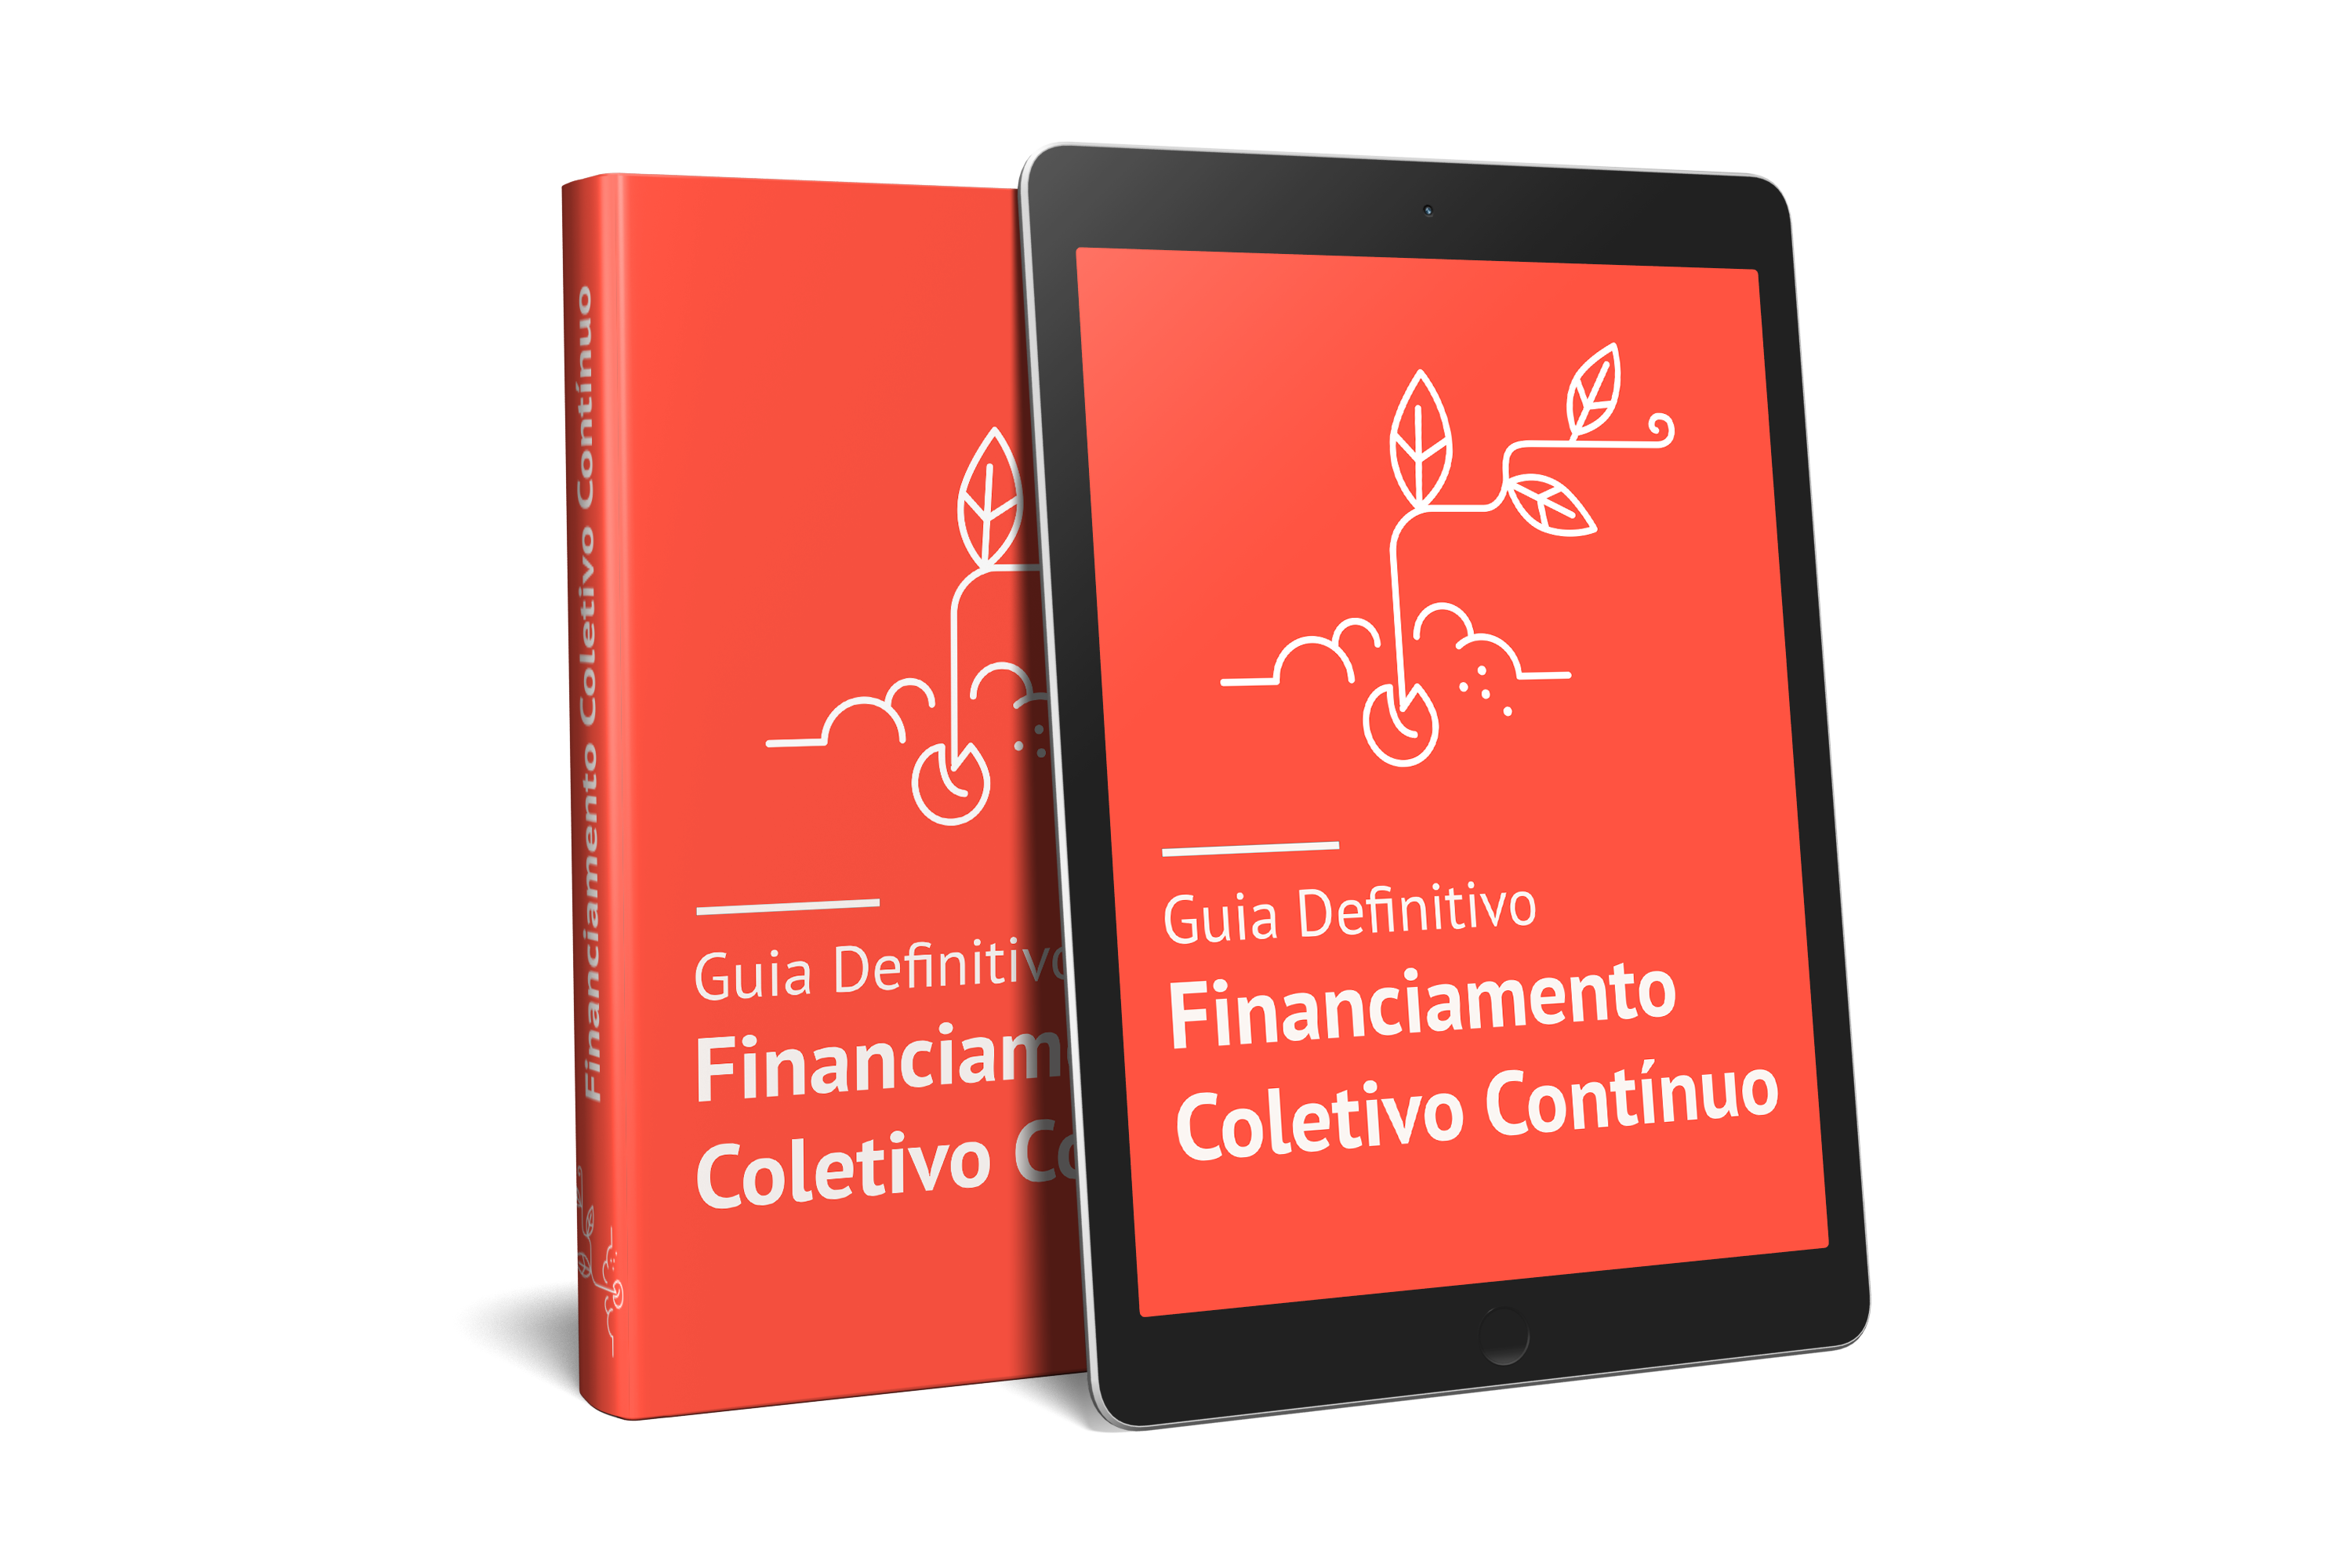 Guia Definitivo do Financiamento Coletivo Contínuo